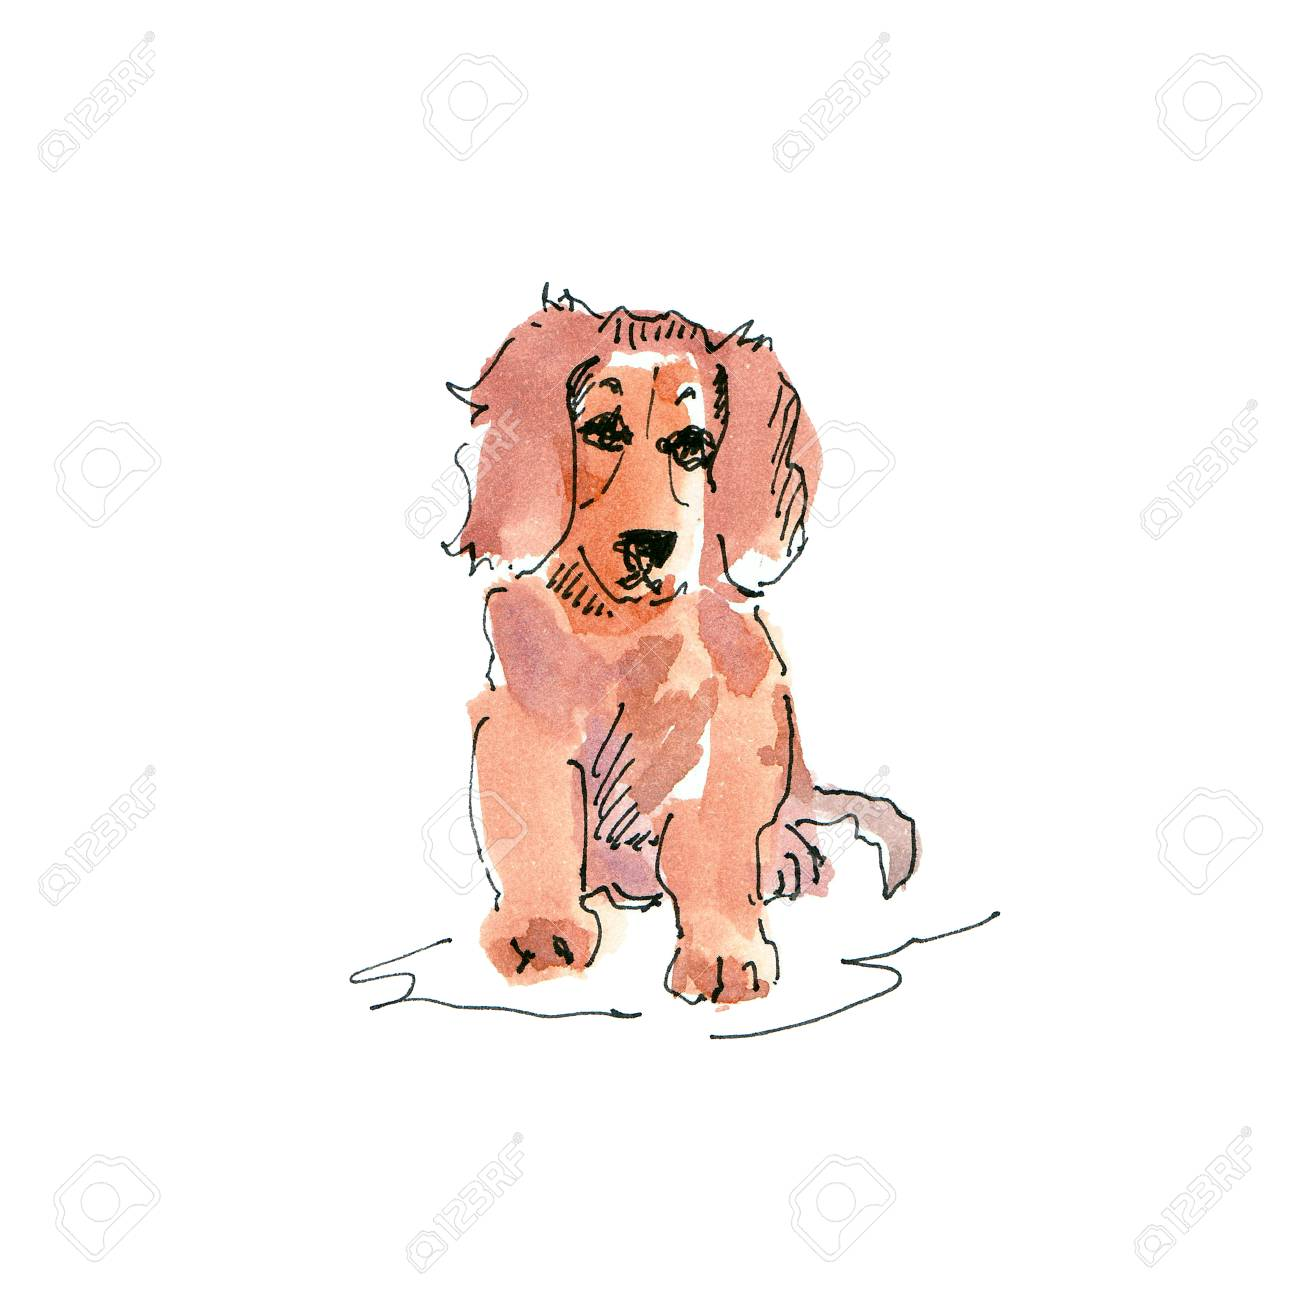 Watercolor Illustration Of Dachshund Puppy Dog Drawing Isolated Stock Photo Picture And Royalty Free Image Image 109991156